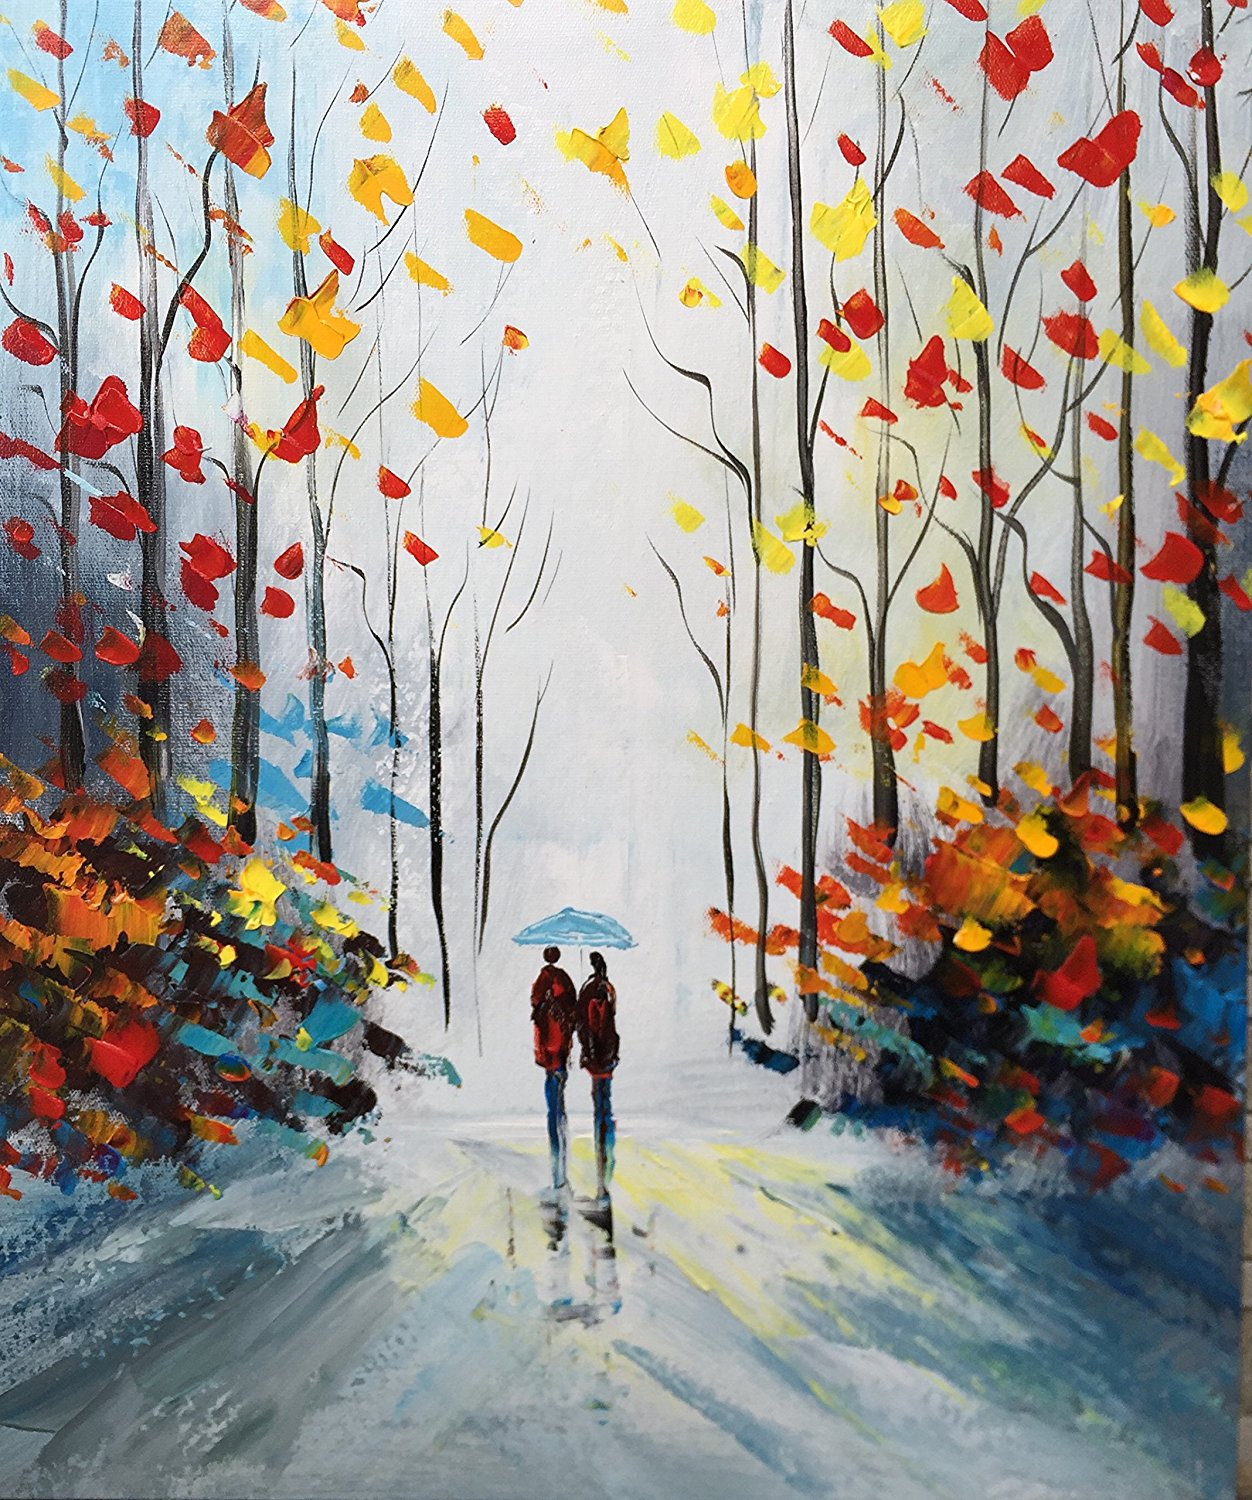 Woods And Roads Hand Painted Modern Gallery Wrapped Abstract Landscape Oil Paintings On Canvas Wall